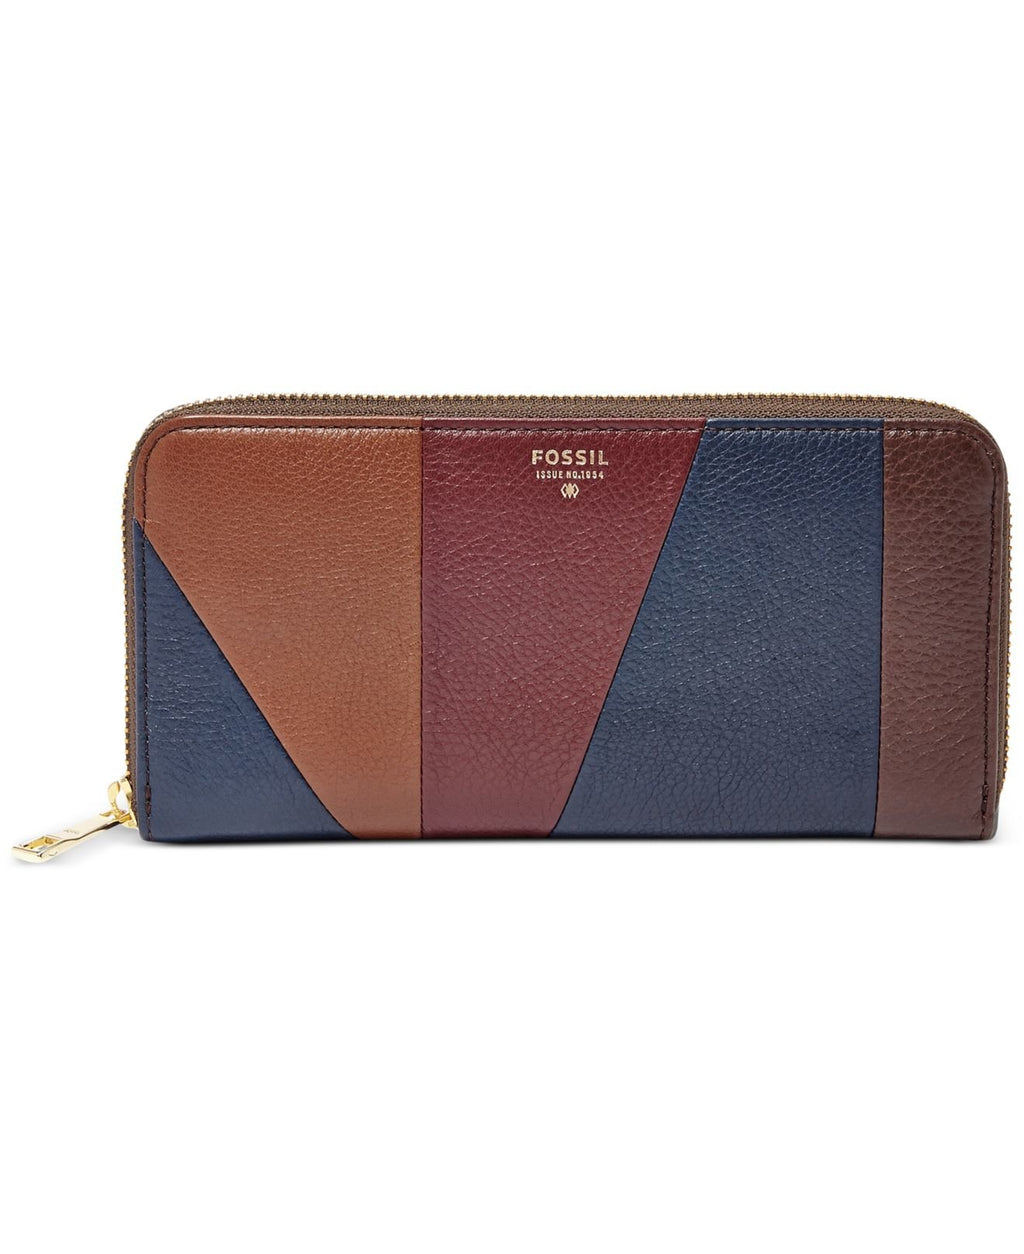 Fossil Sydney Zip Clutch, Navy/Taupe